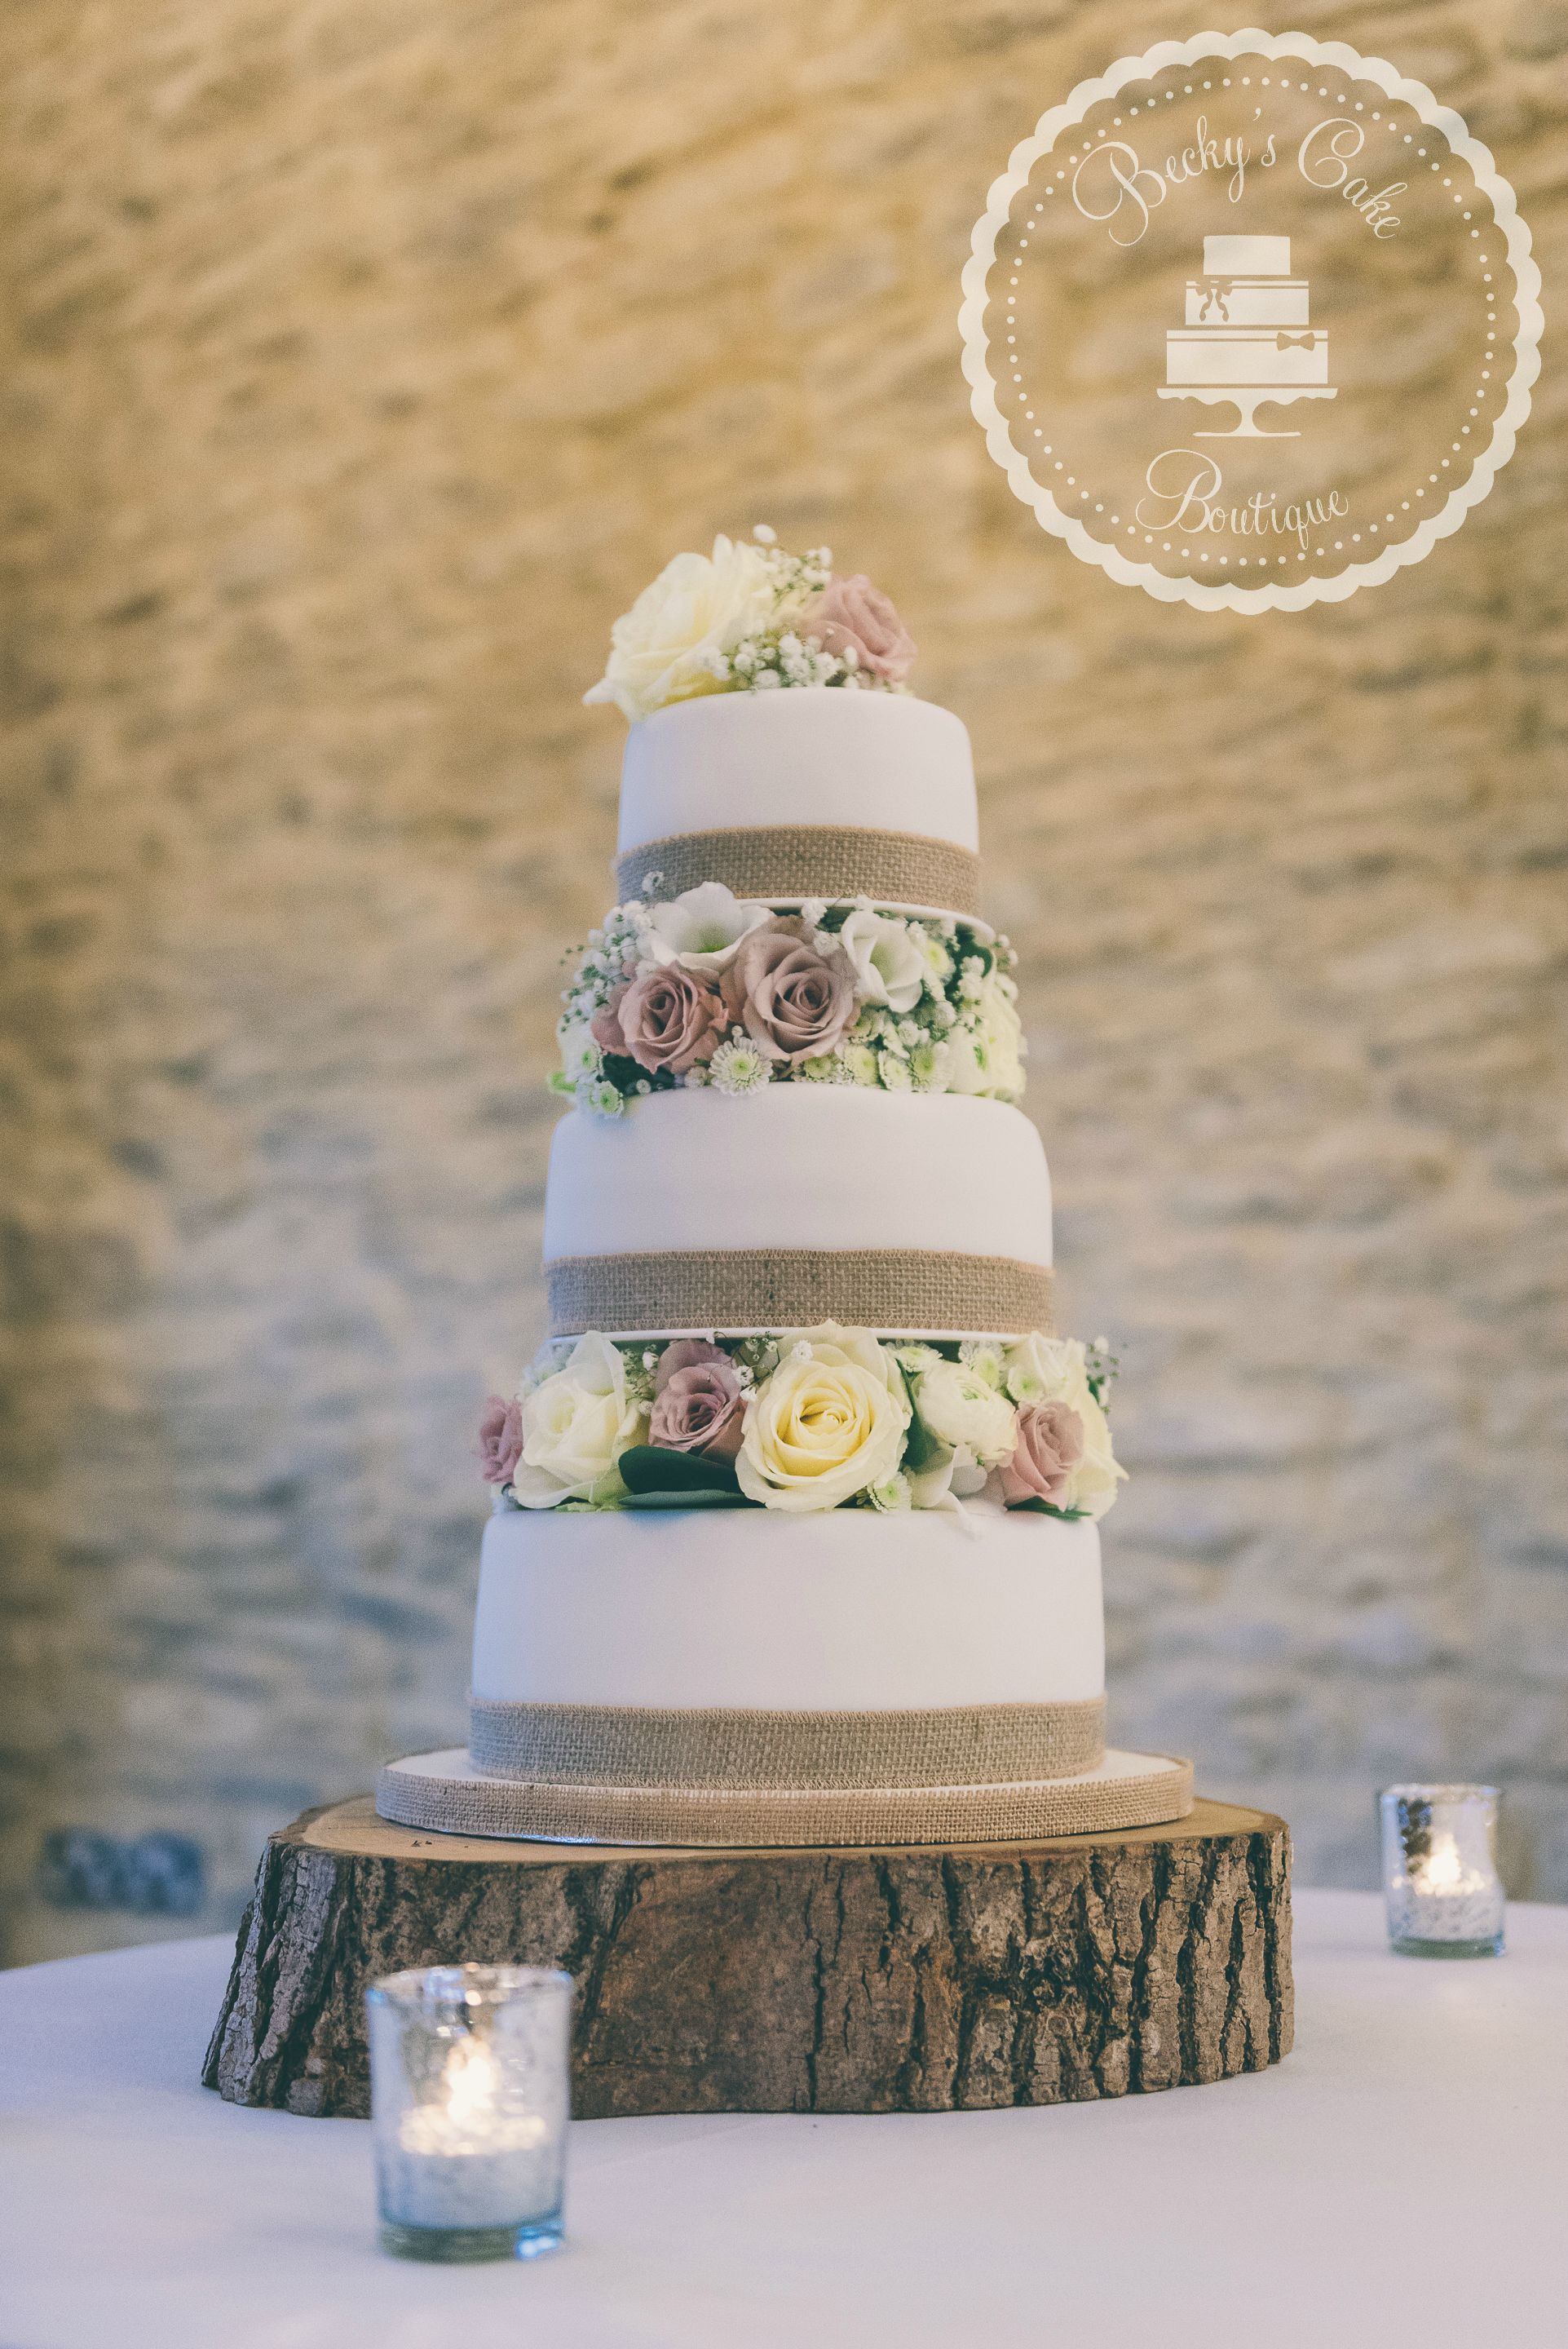 Fresh Floral Wedding Cake At Kingscote Barn Tetbury In Salted - Cheltenham Wedding Cakes